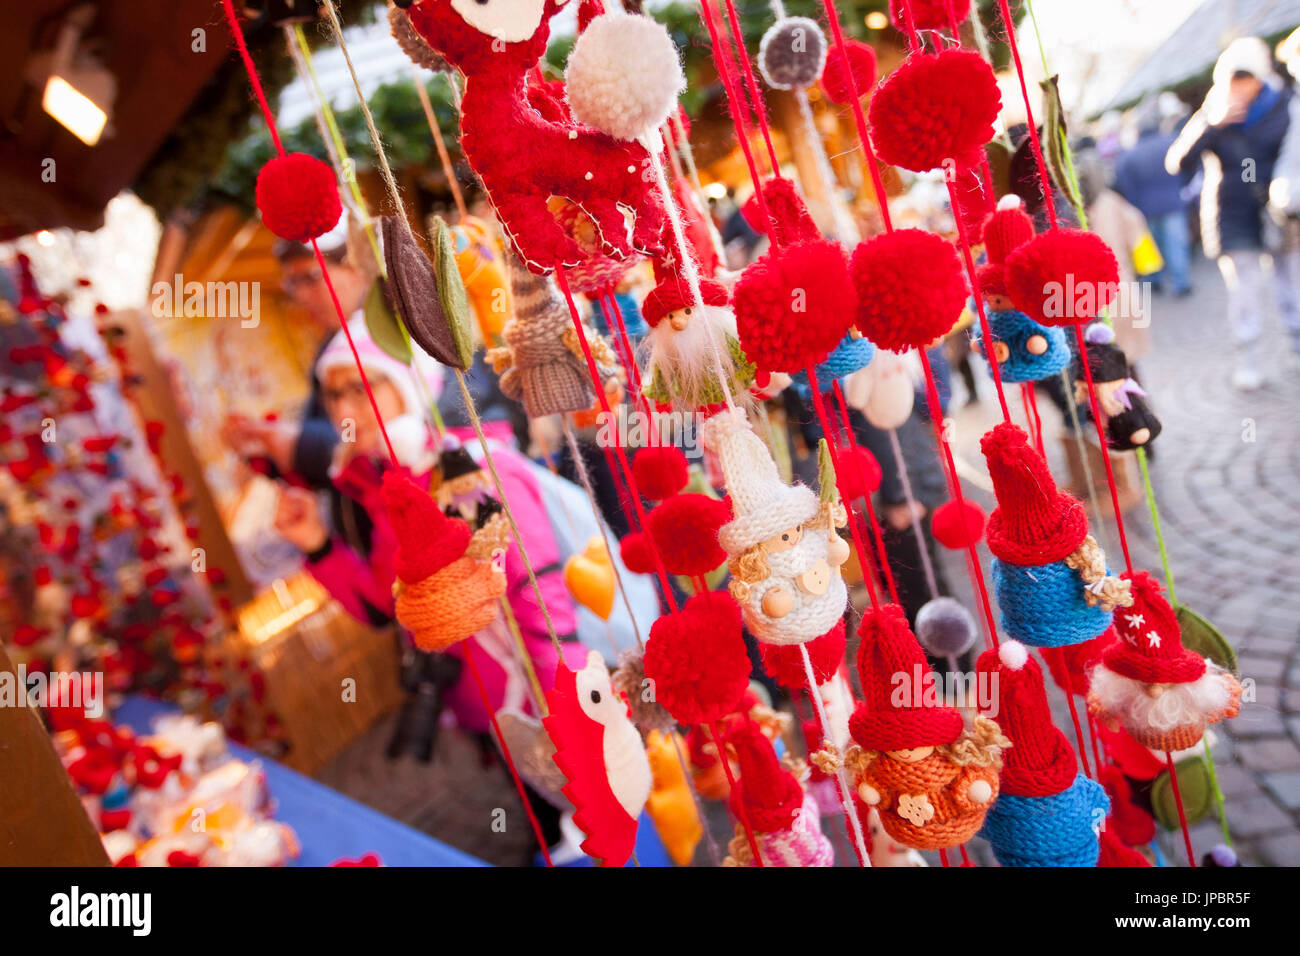 a close up image of the typical Christmas gadgets we can buy during the Christmas market in the city of Brixen, Bolzano province, South Tyrol, Trentino Alto Adige, Italy, Europe, outdoor, - Stock Image